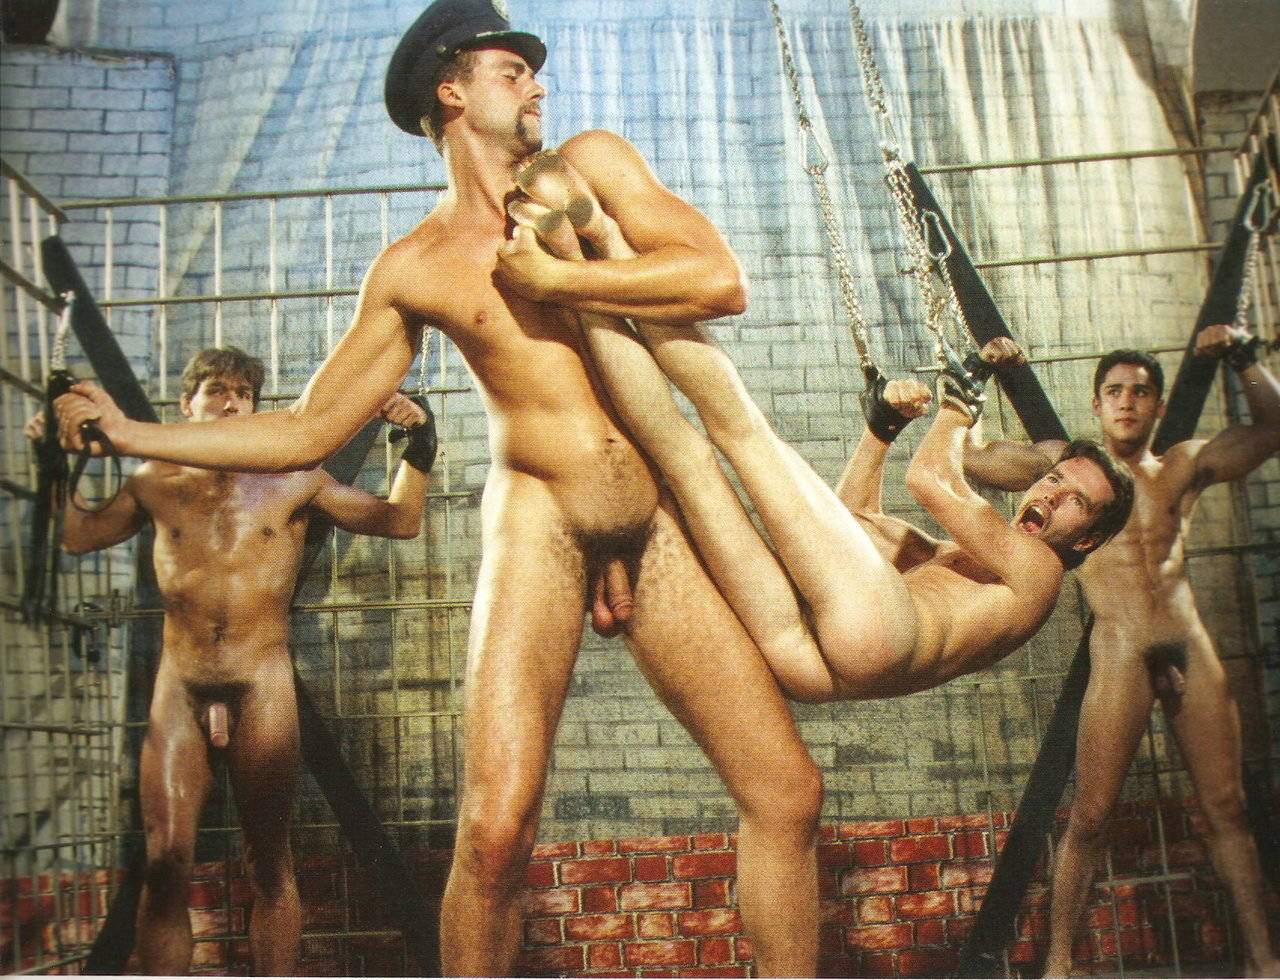 vintage gay hot daddy dude men porn bob mizer